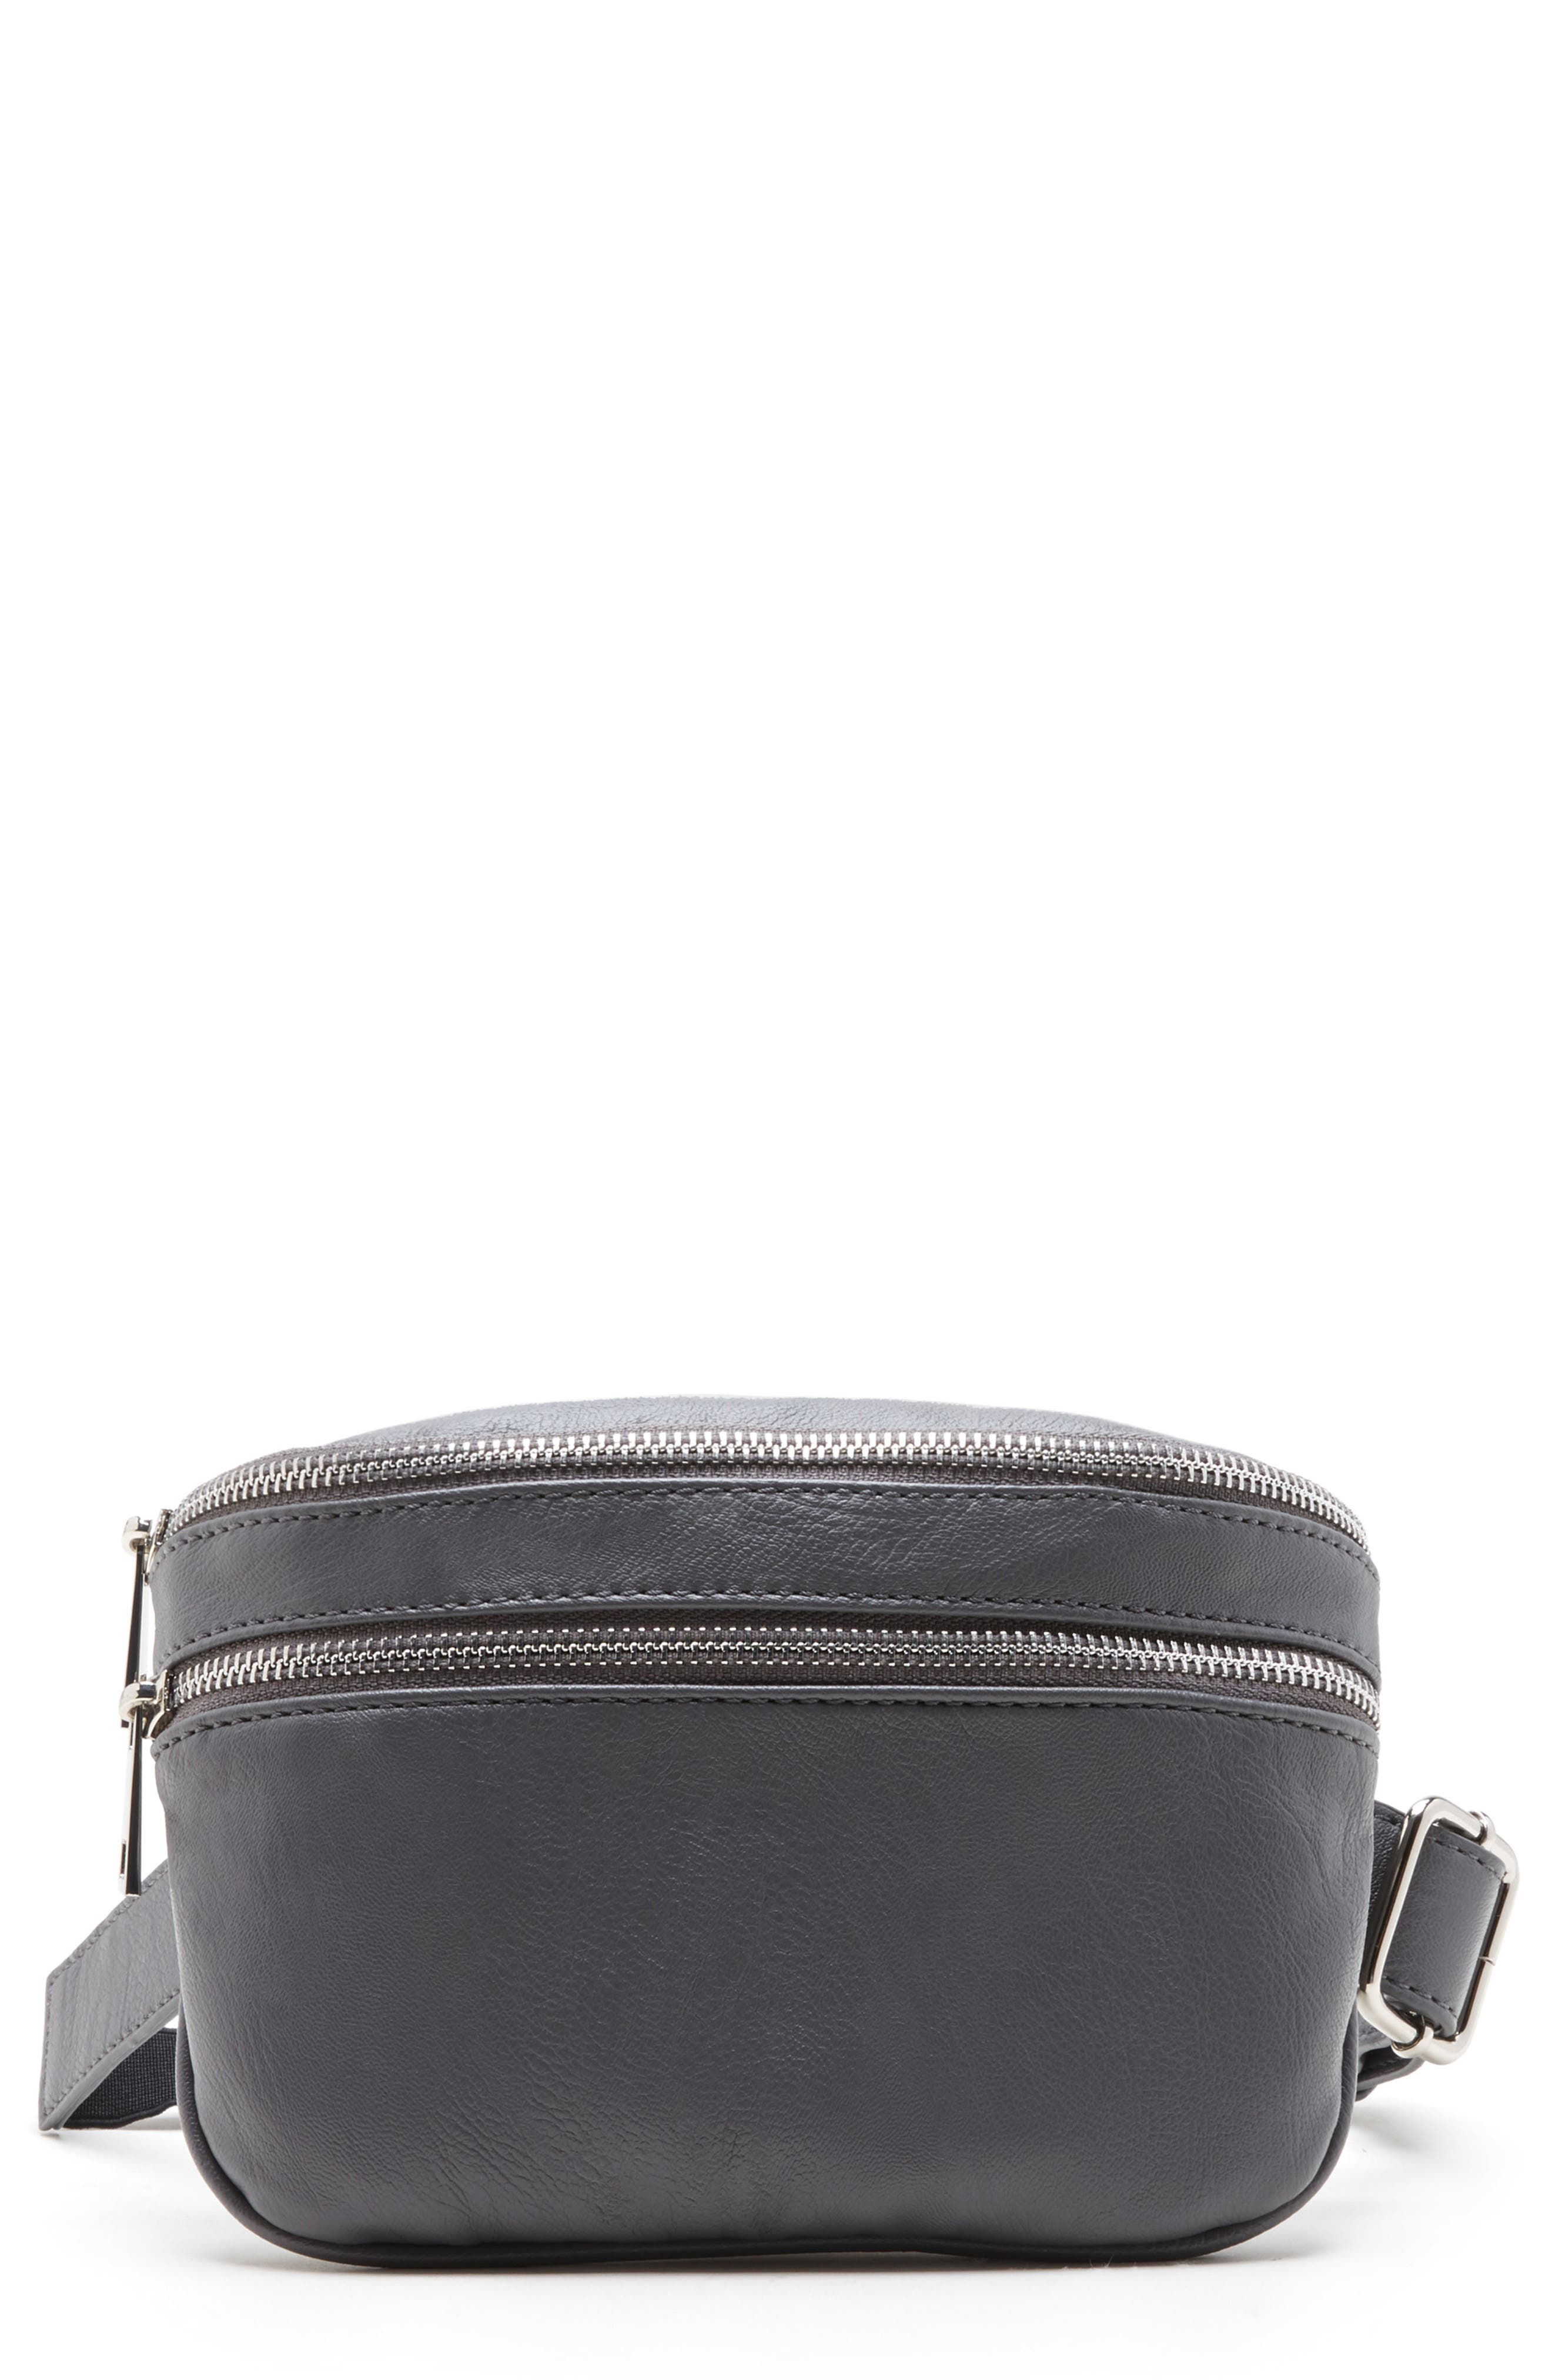 SOLE SOCIETY, Cadee Faux Leather Belt Bag, Main thumbnail 1, color, CHARCOAL